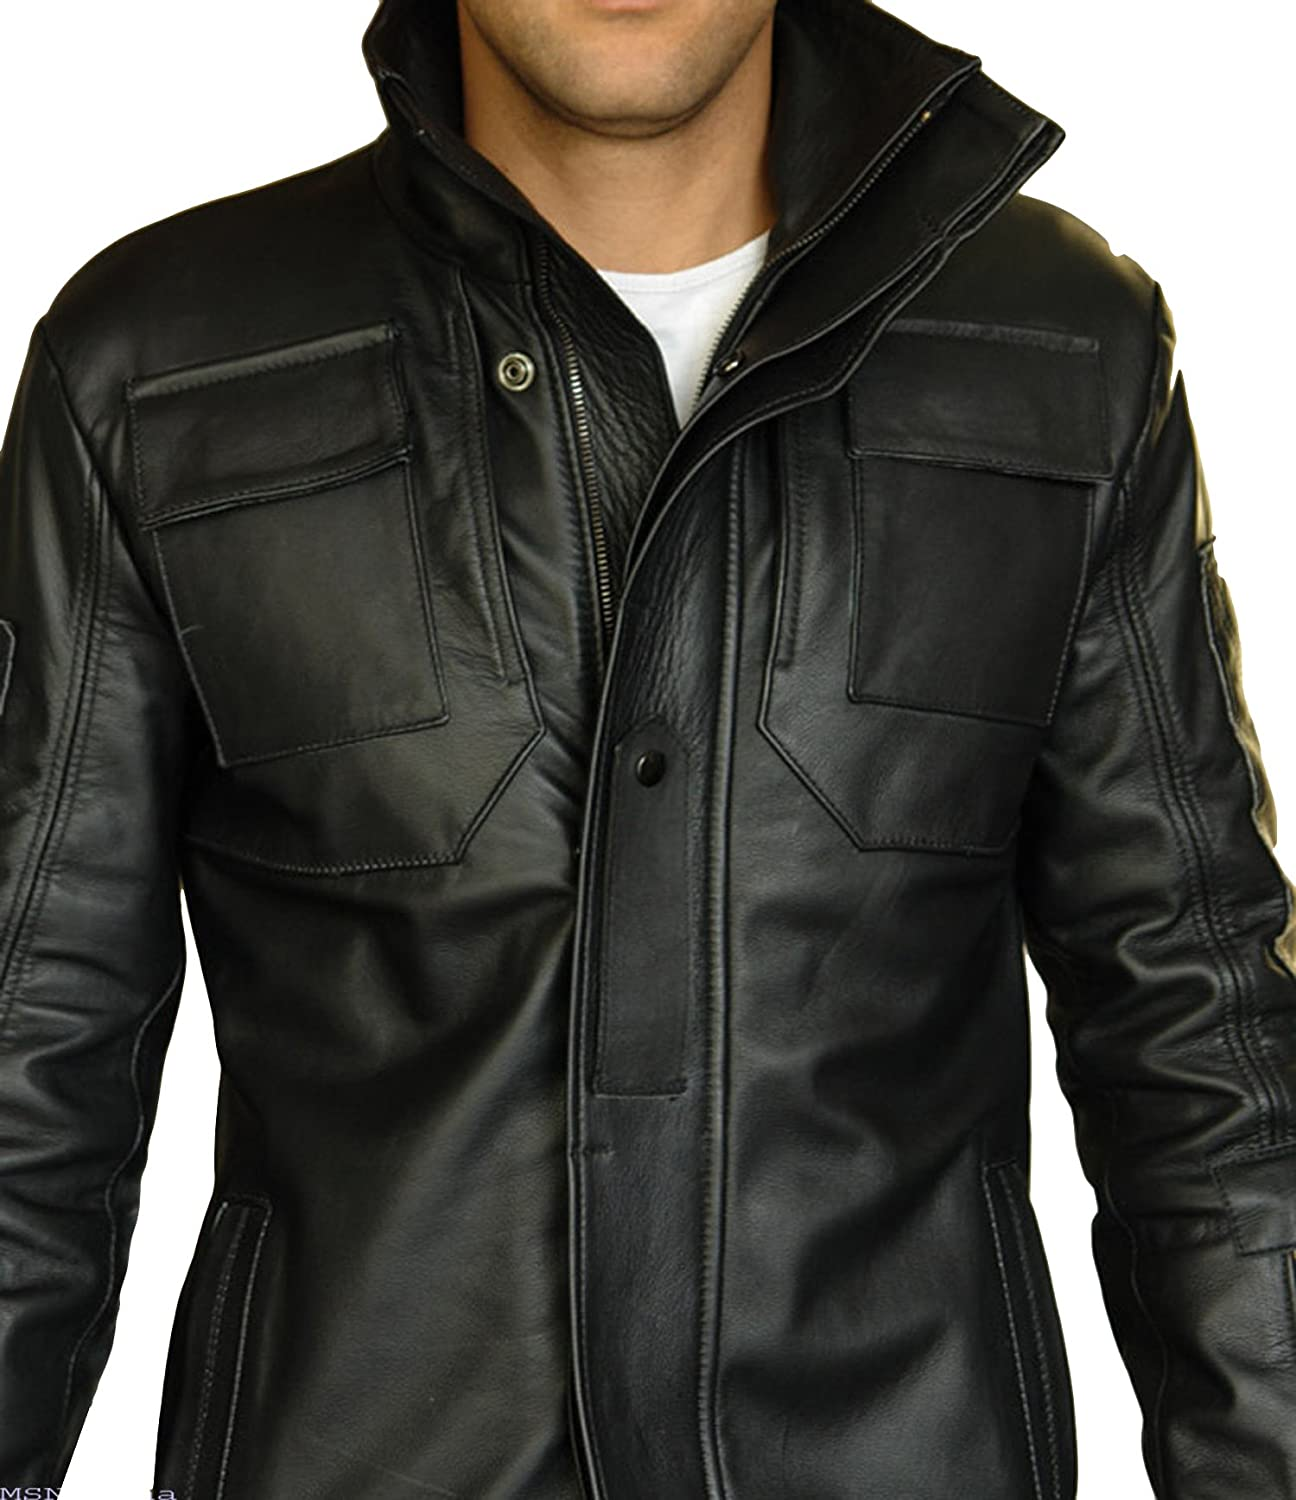 The Bombay Leather Co Men Black Genuine Lambskin Leather Jacket Size S M L XL XXL